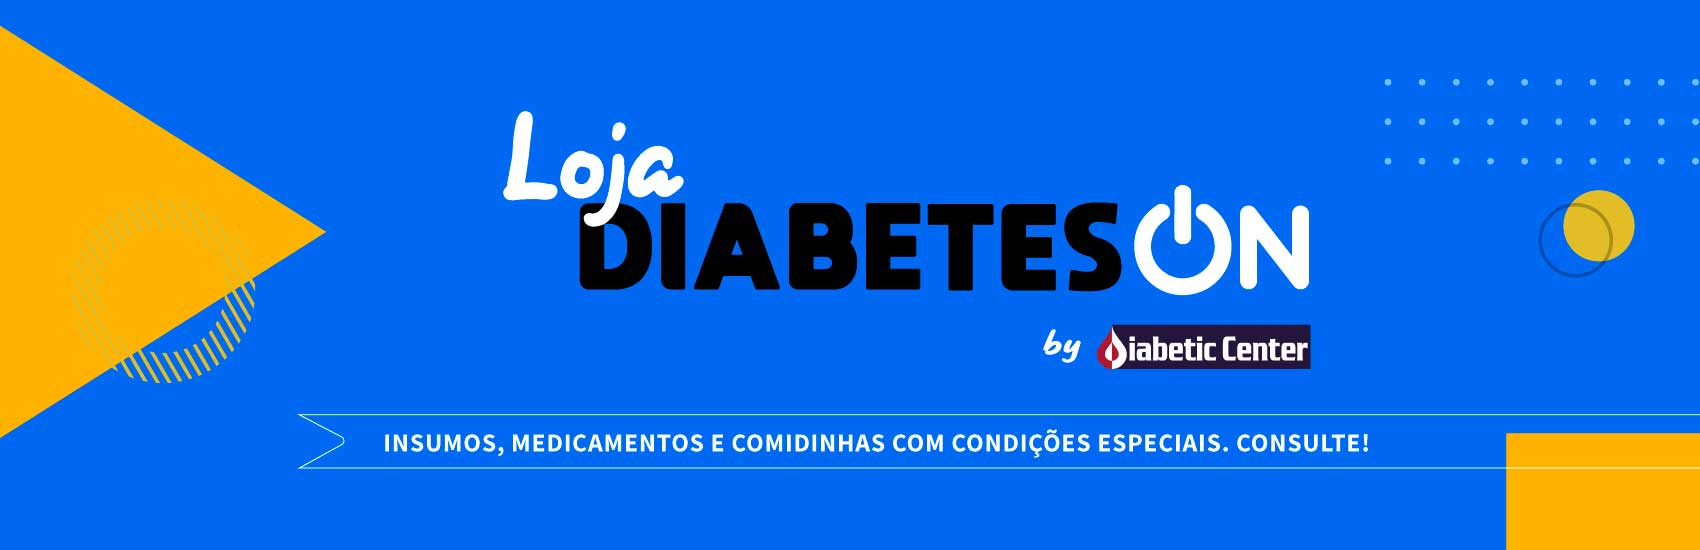 Loja Diabetes On